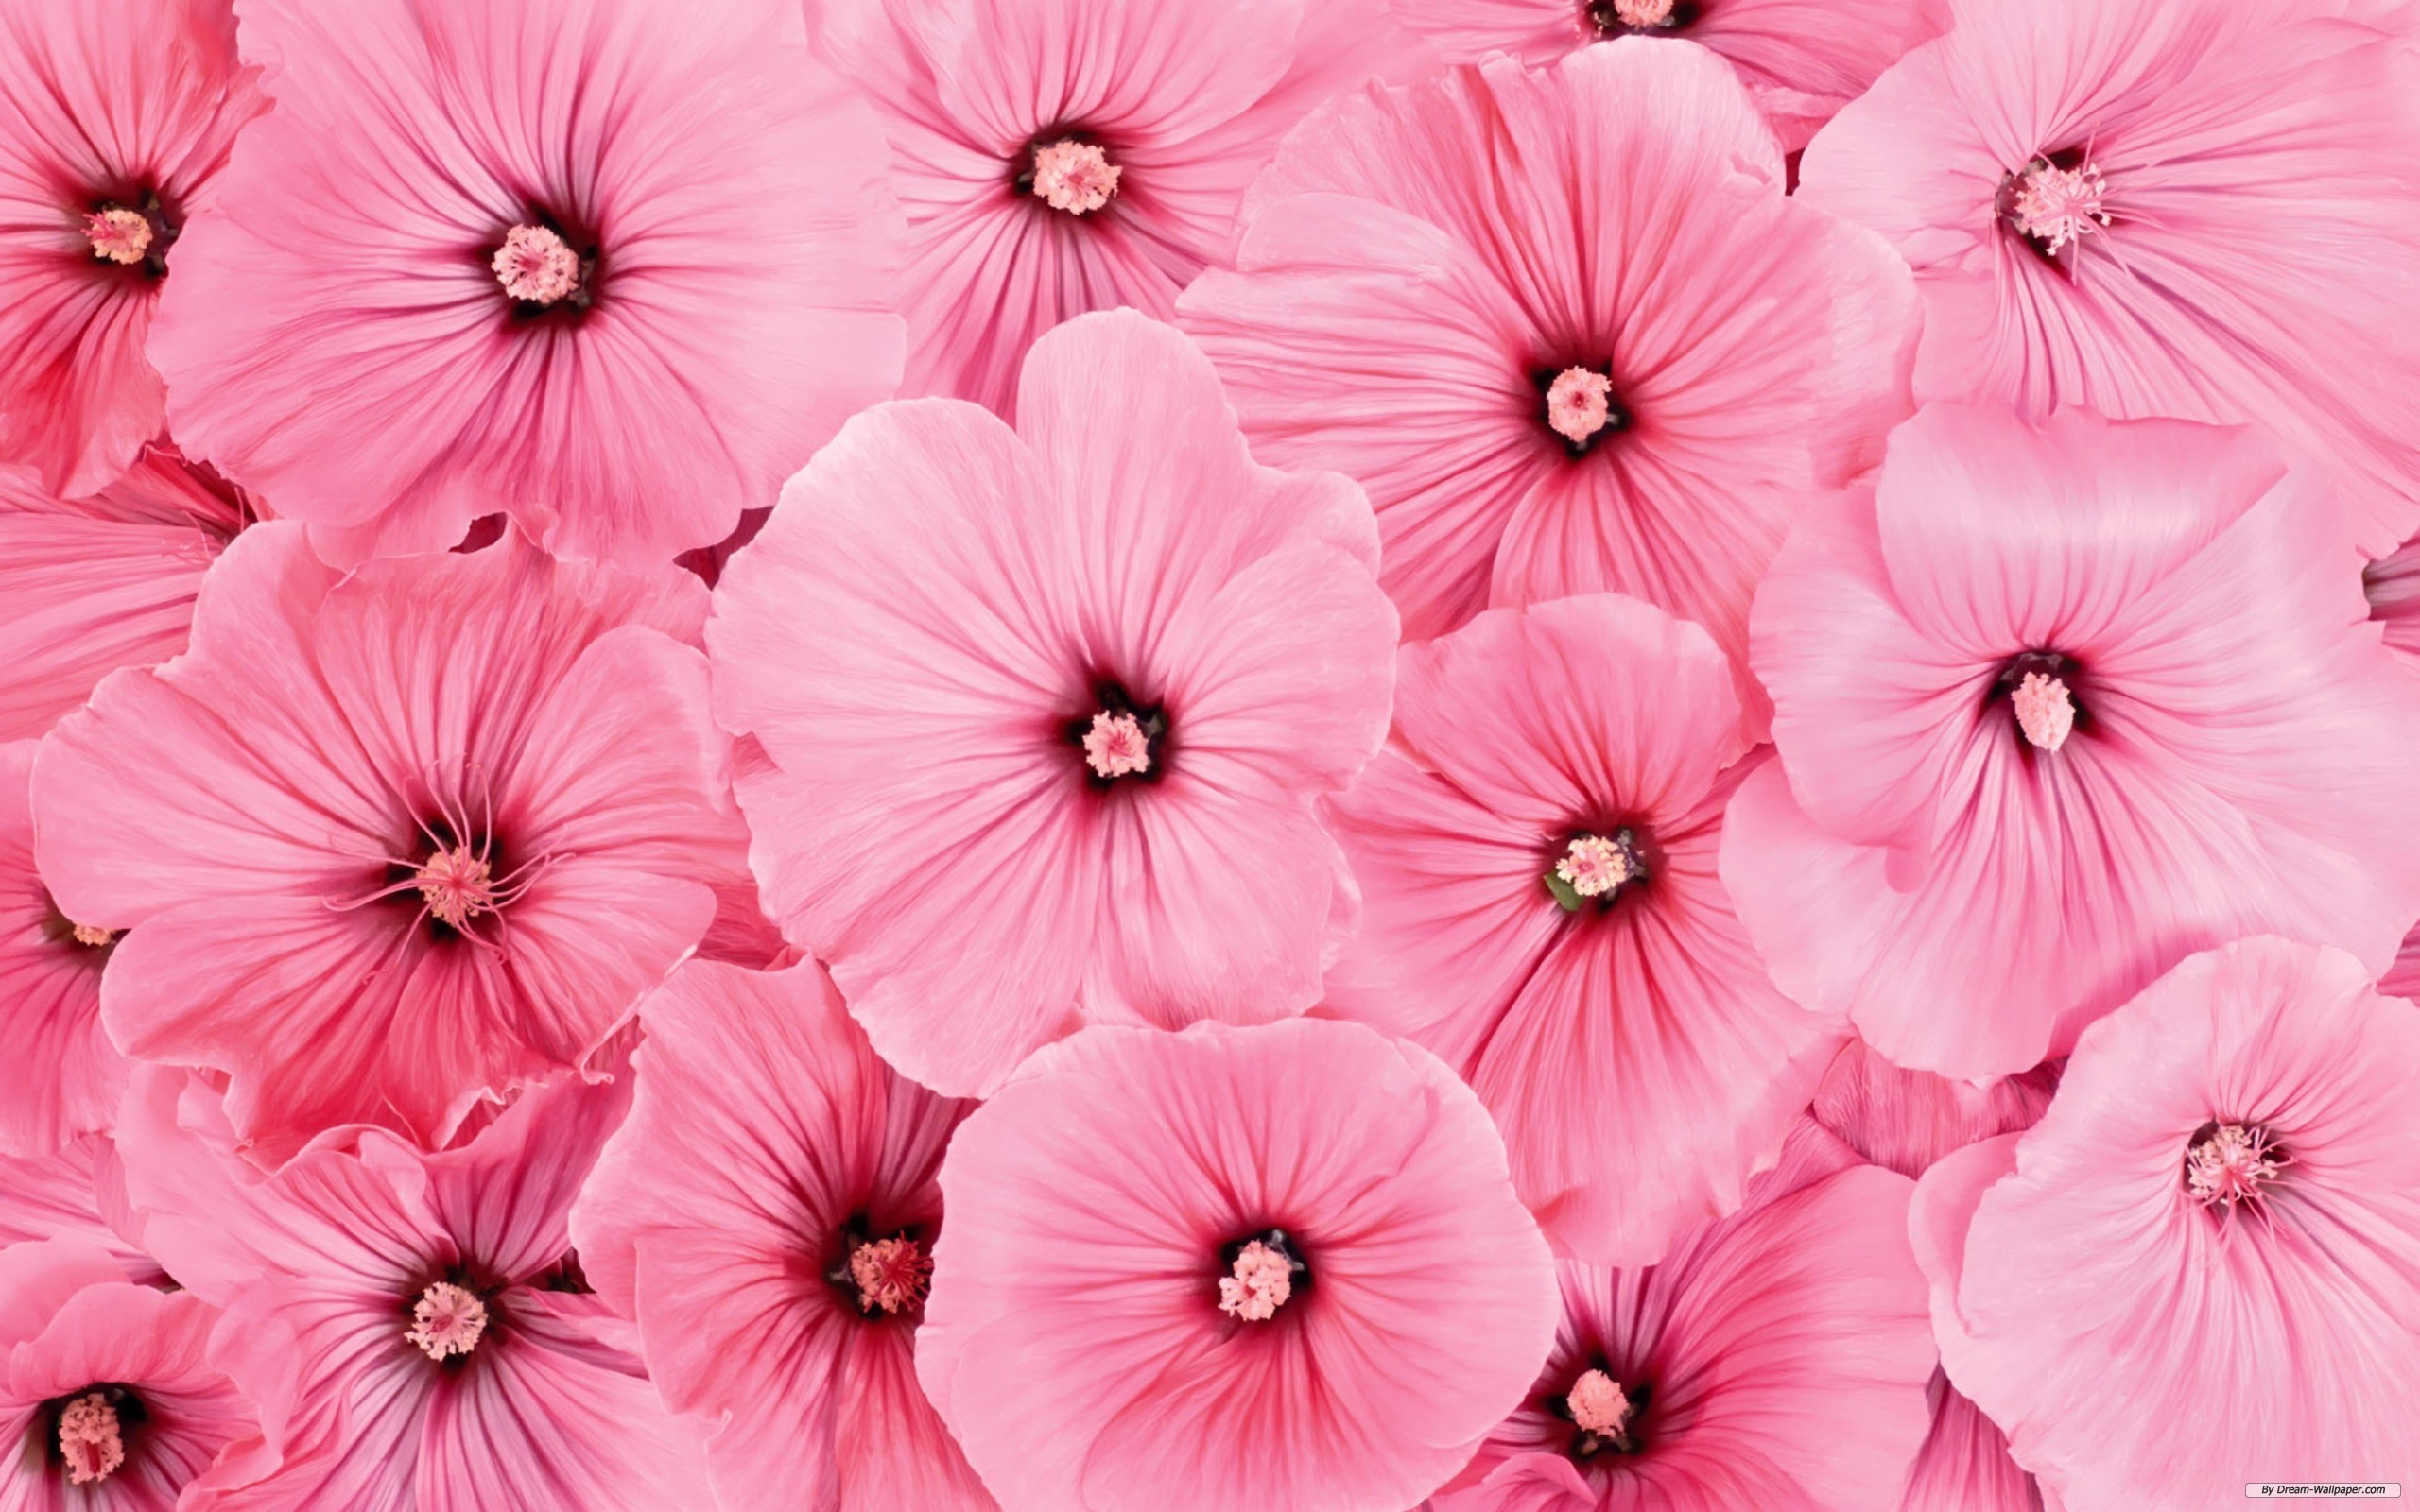 Pink Flowers Backgrounds (PC, Mobile, Gadgets) Compatible | px